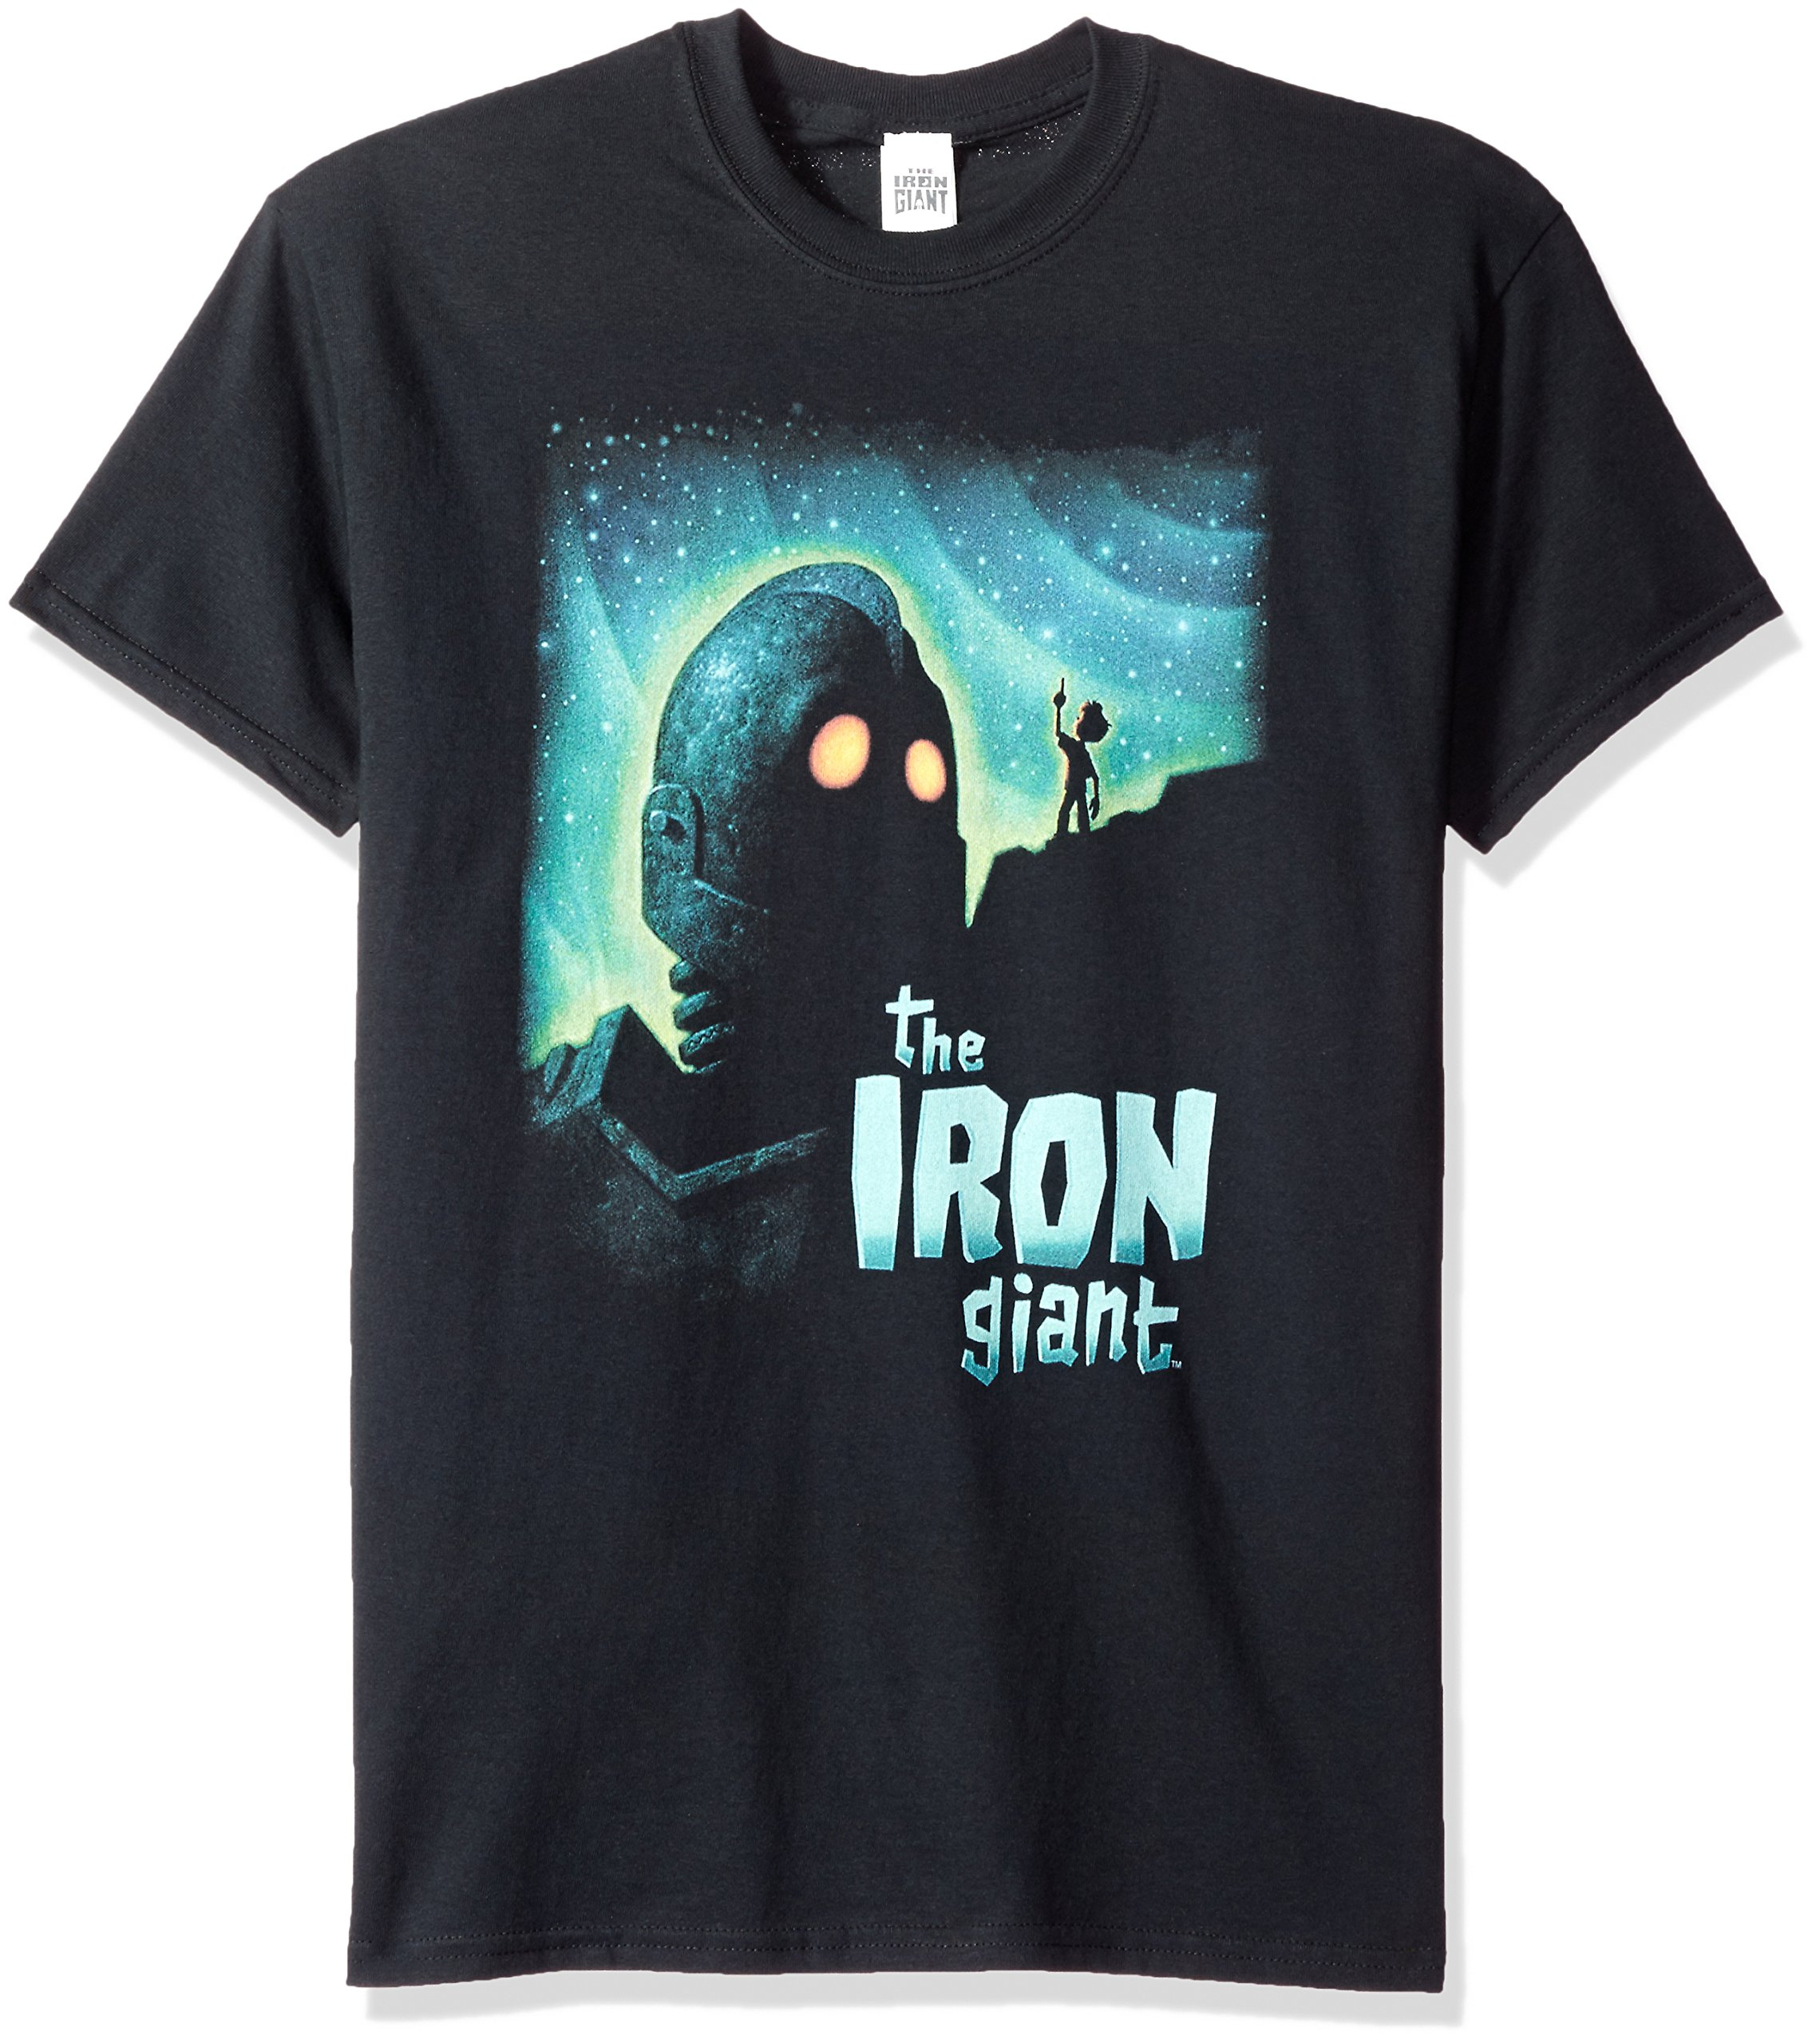 The The Iron Giant Look To The Stars T Shirt 2921